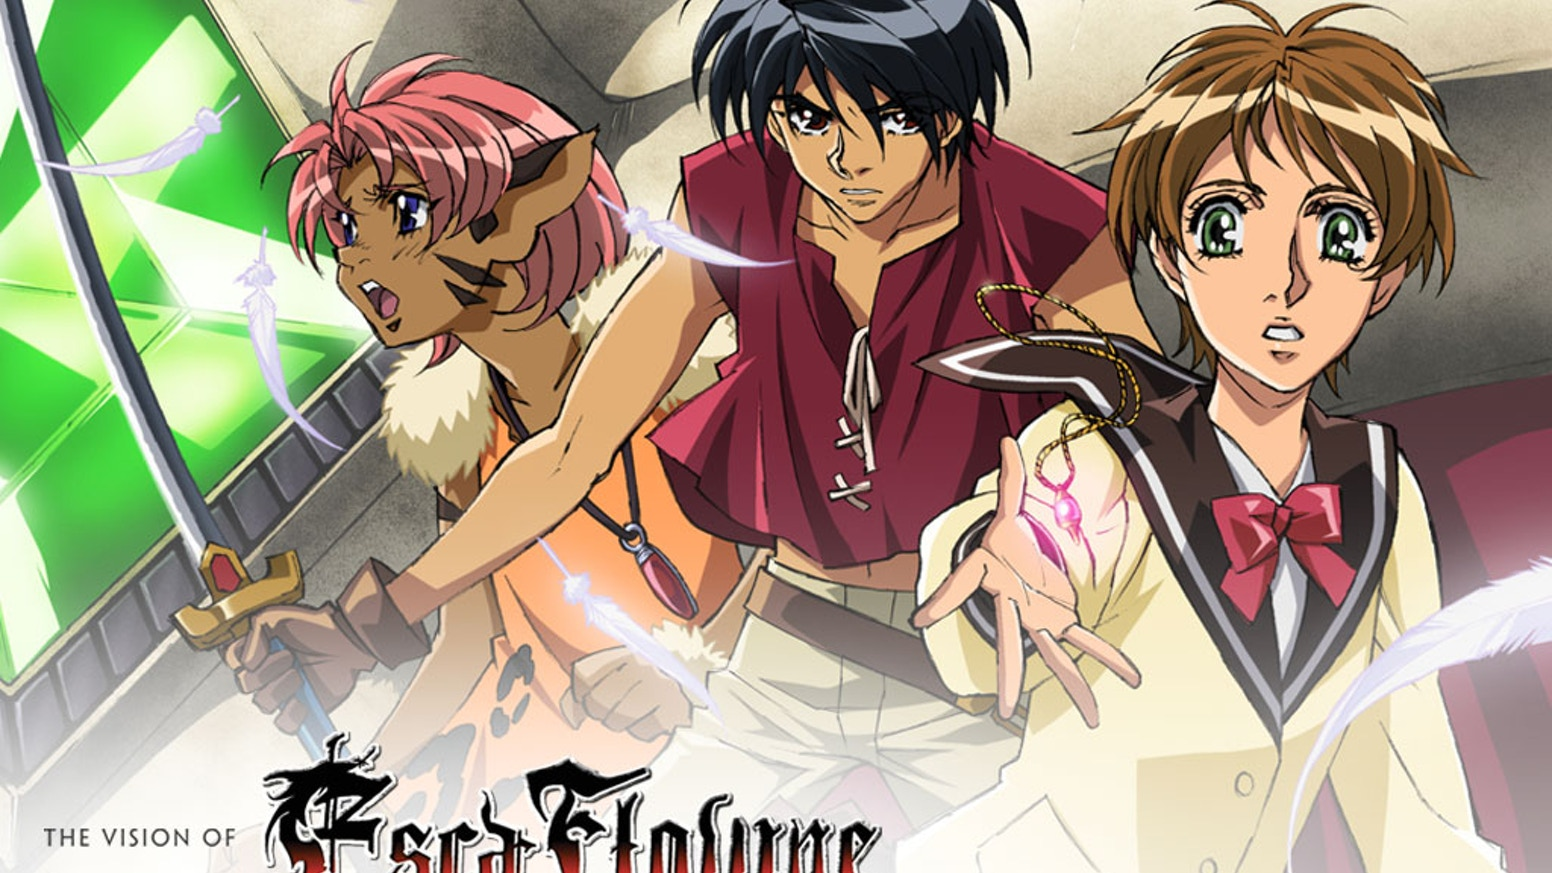 The Vision Of Escaflowne A New HD Dub For Classic Anime